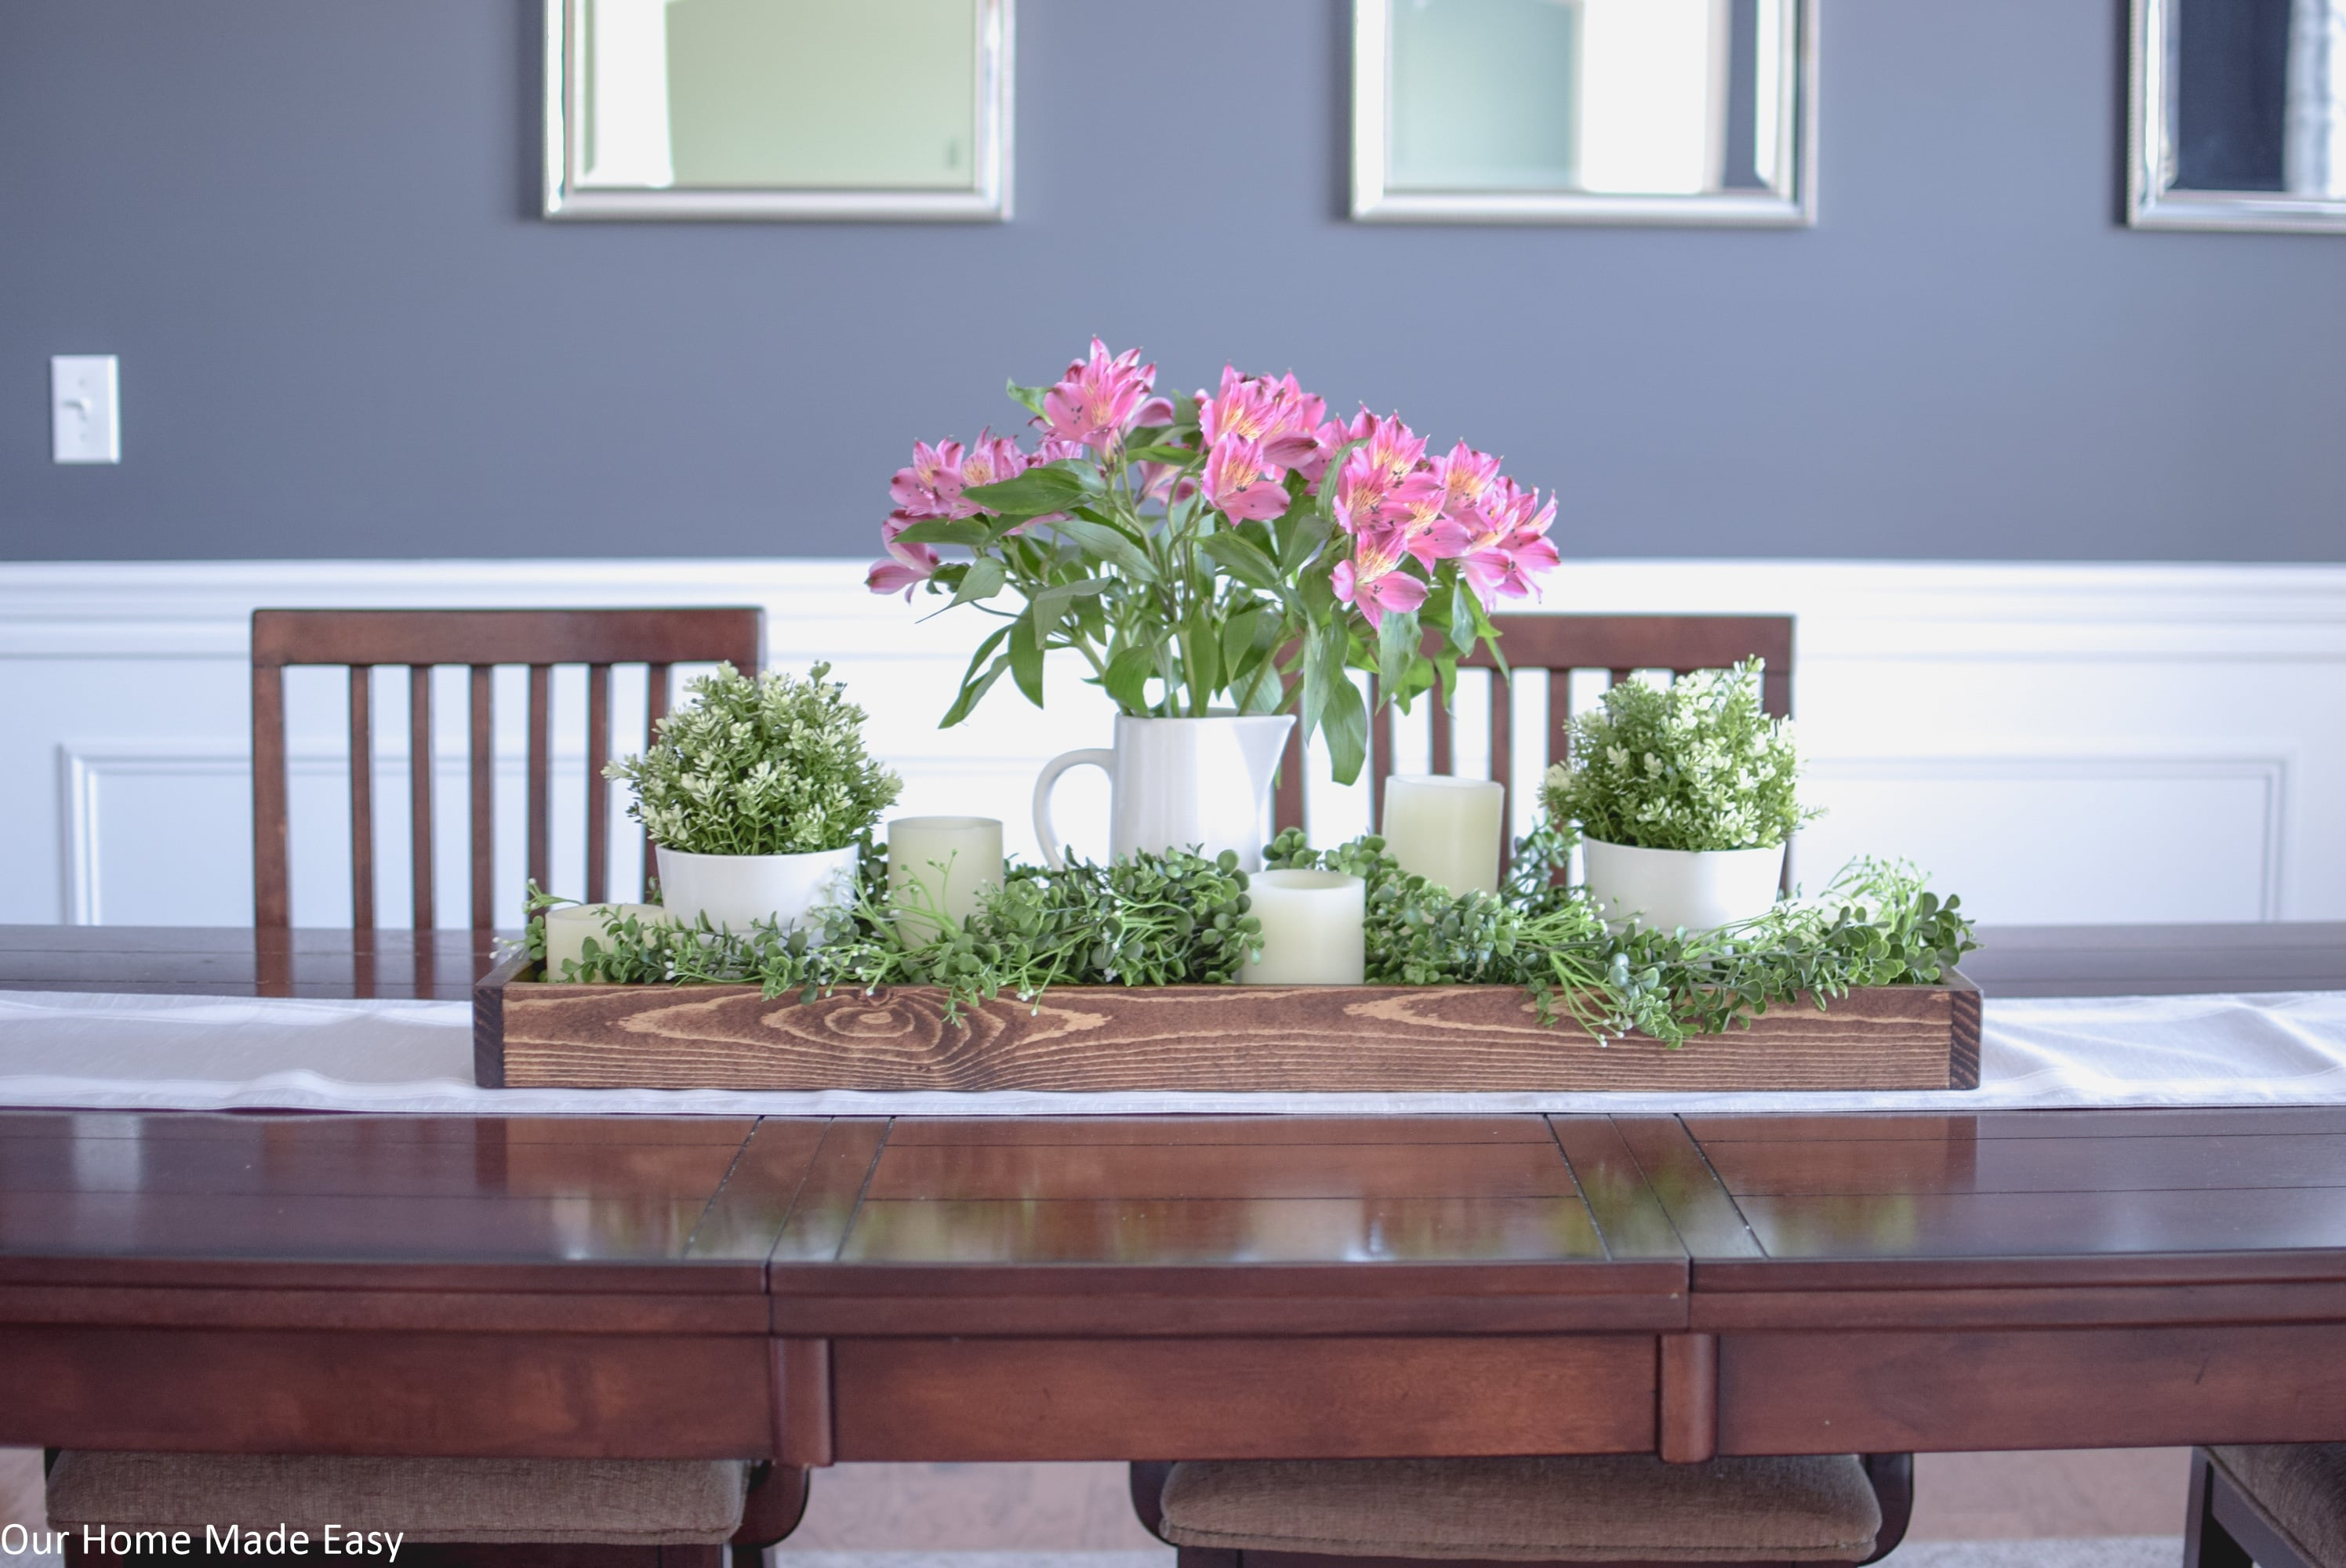 This DIY Spring centerpiece can easily be put together with materials you already have!